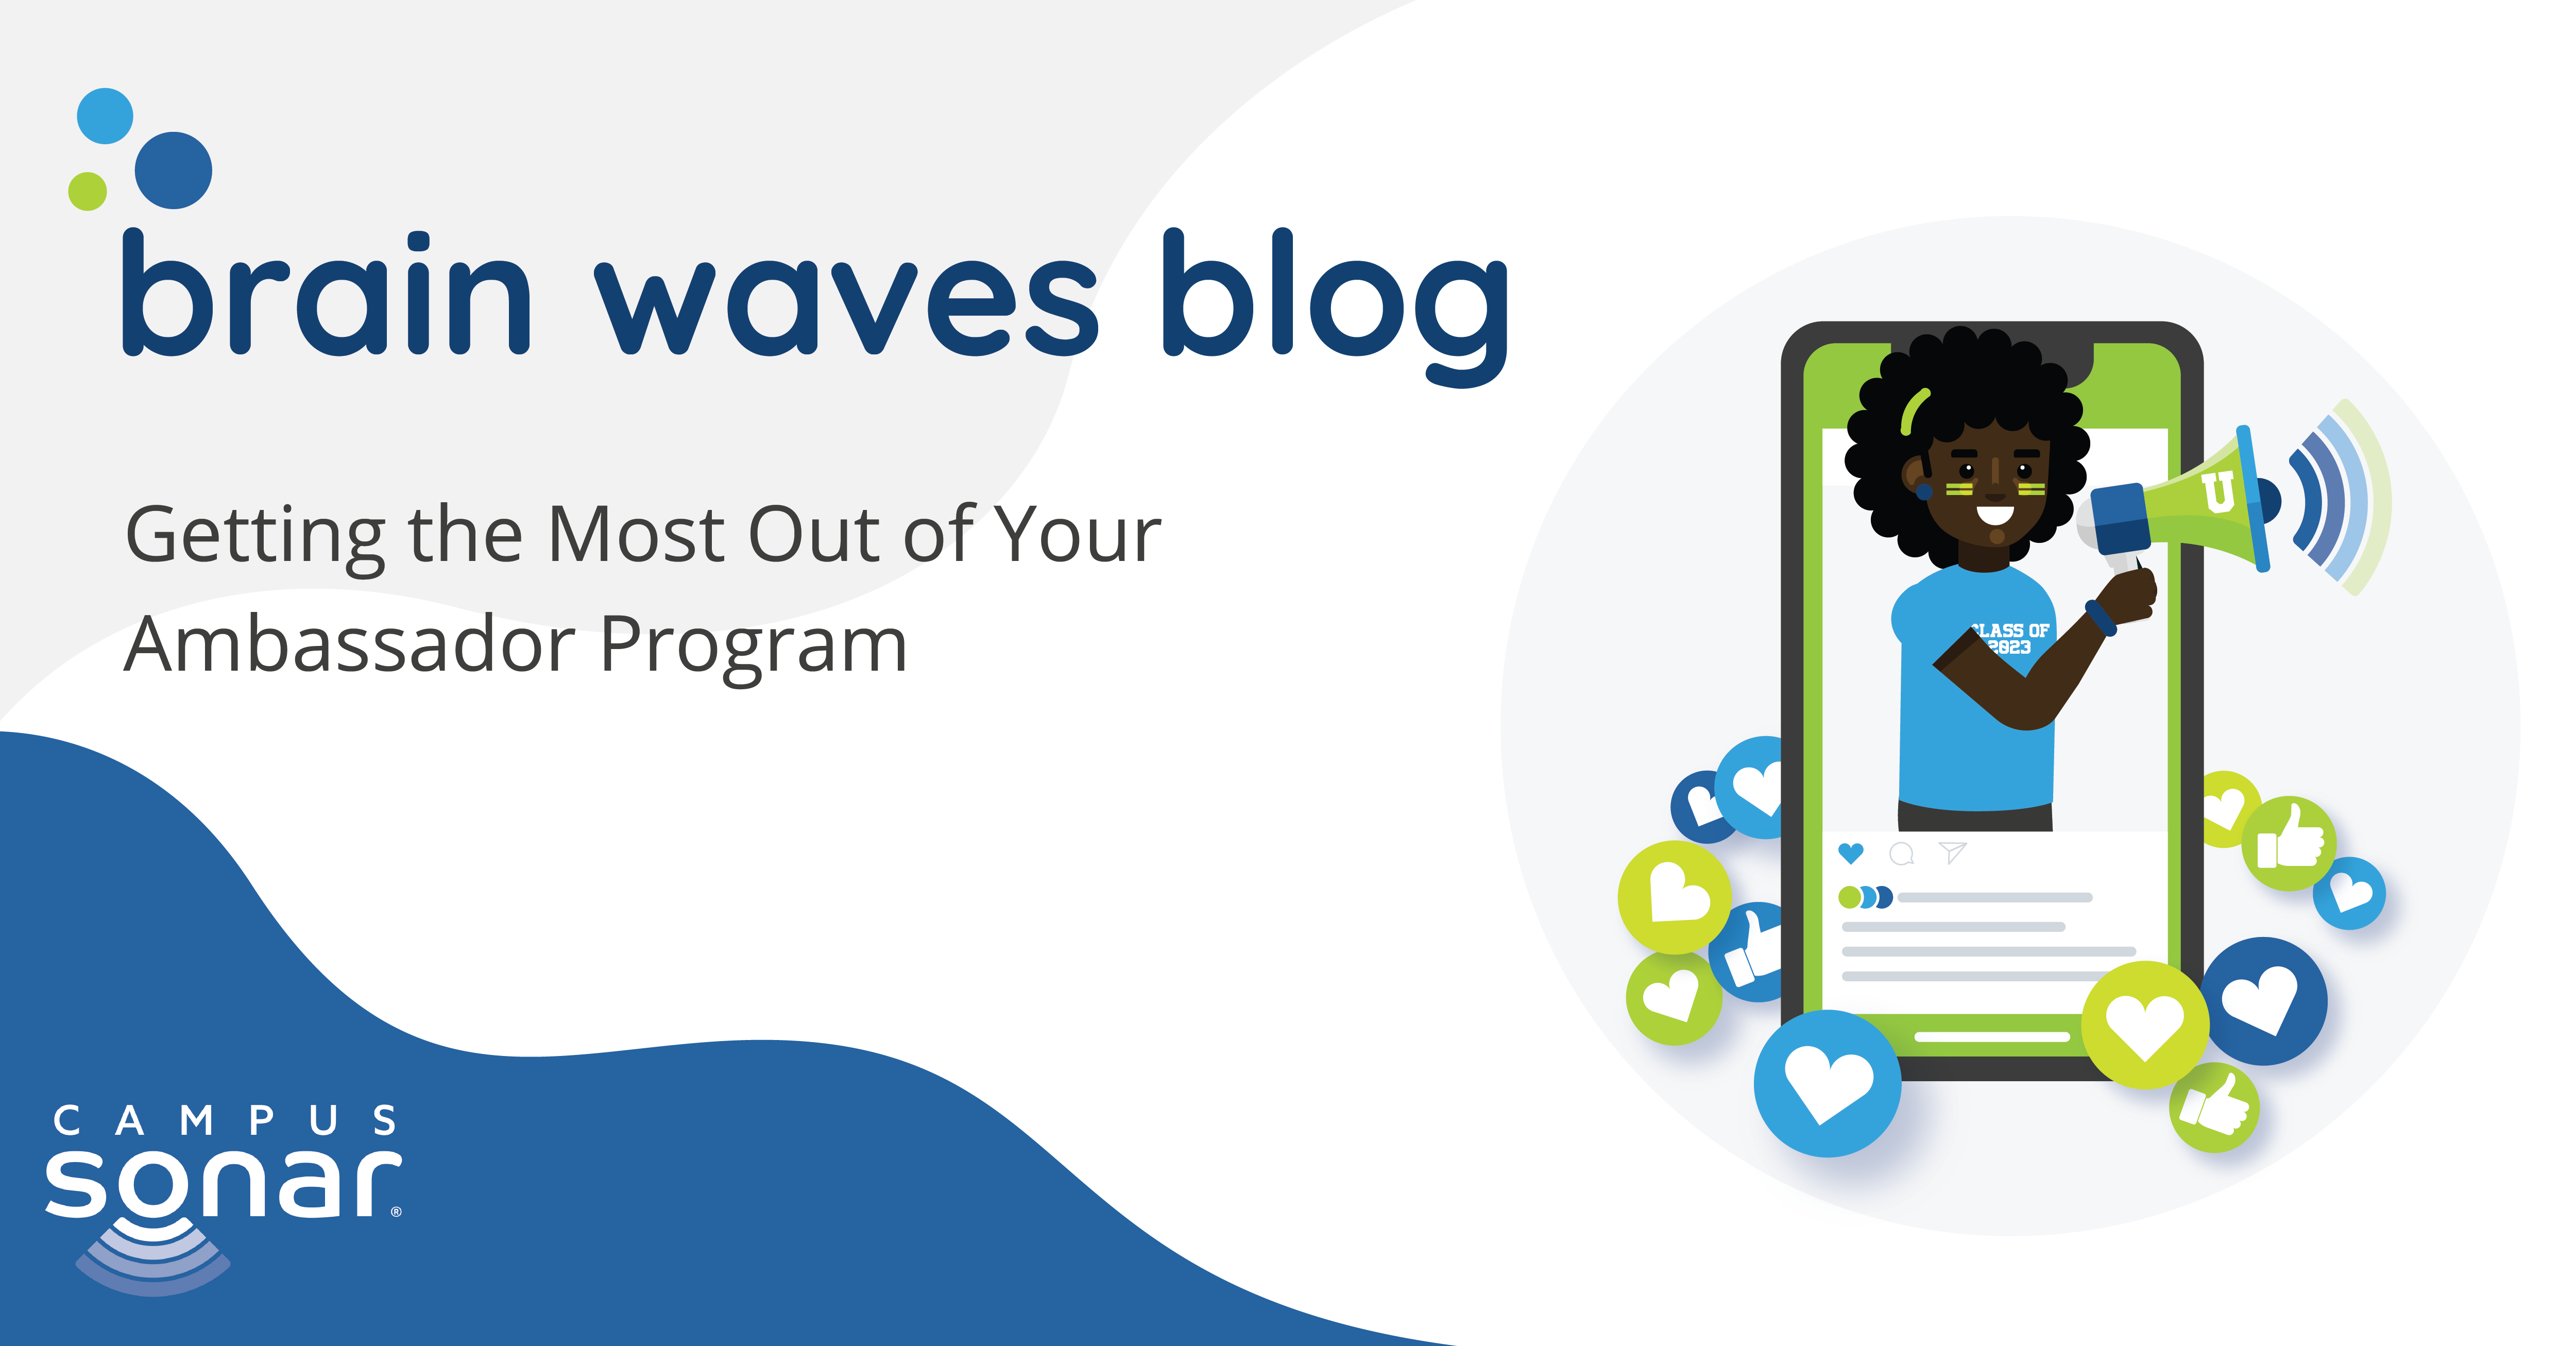 Brain Waves blog post image for Getting the Most Our of Your Ambassador Program